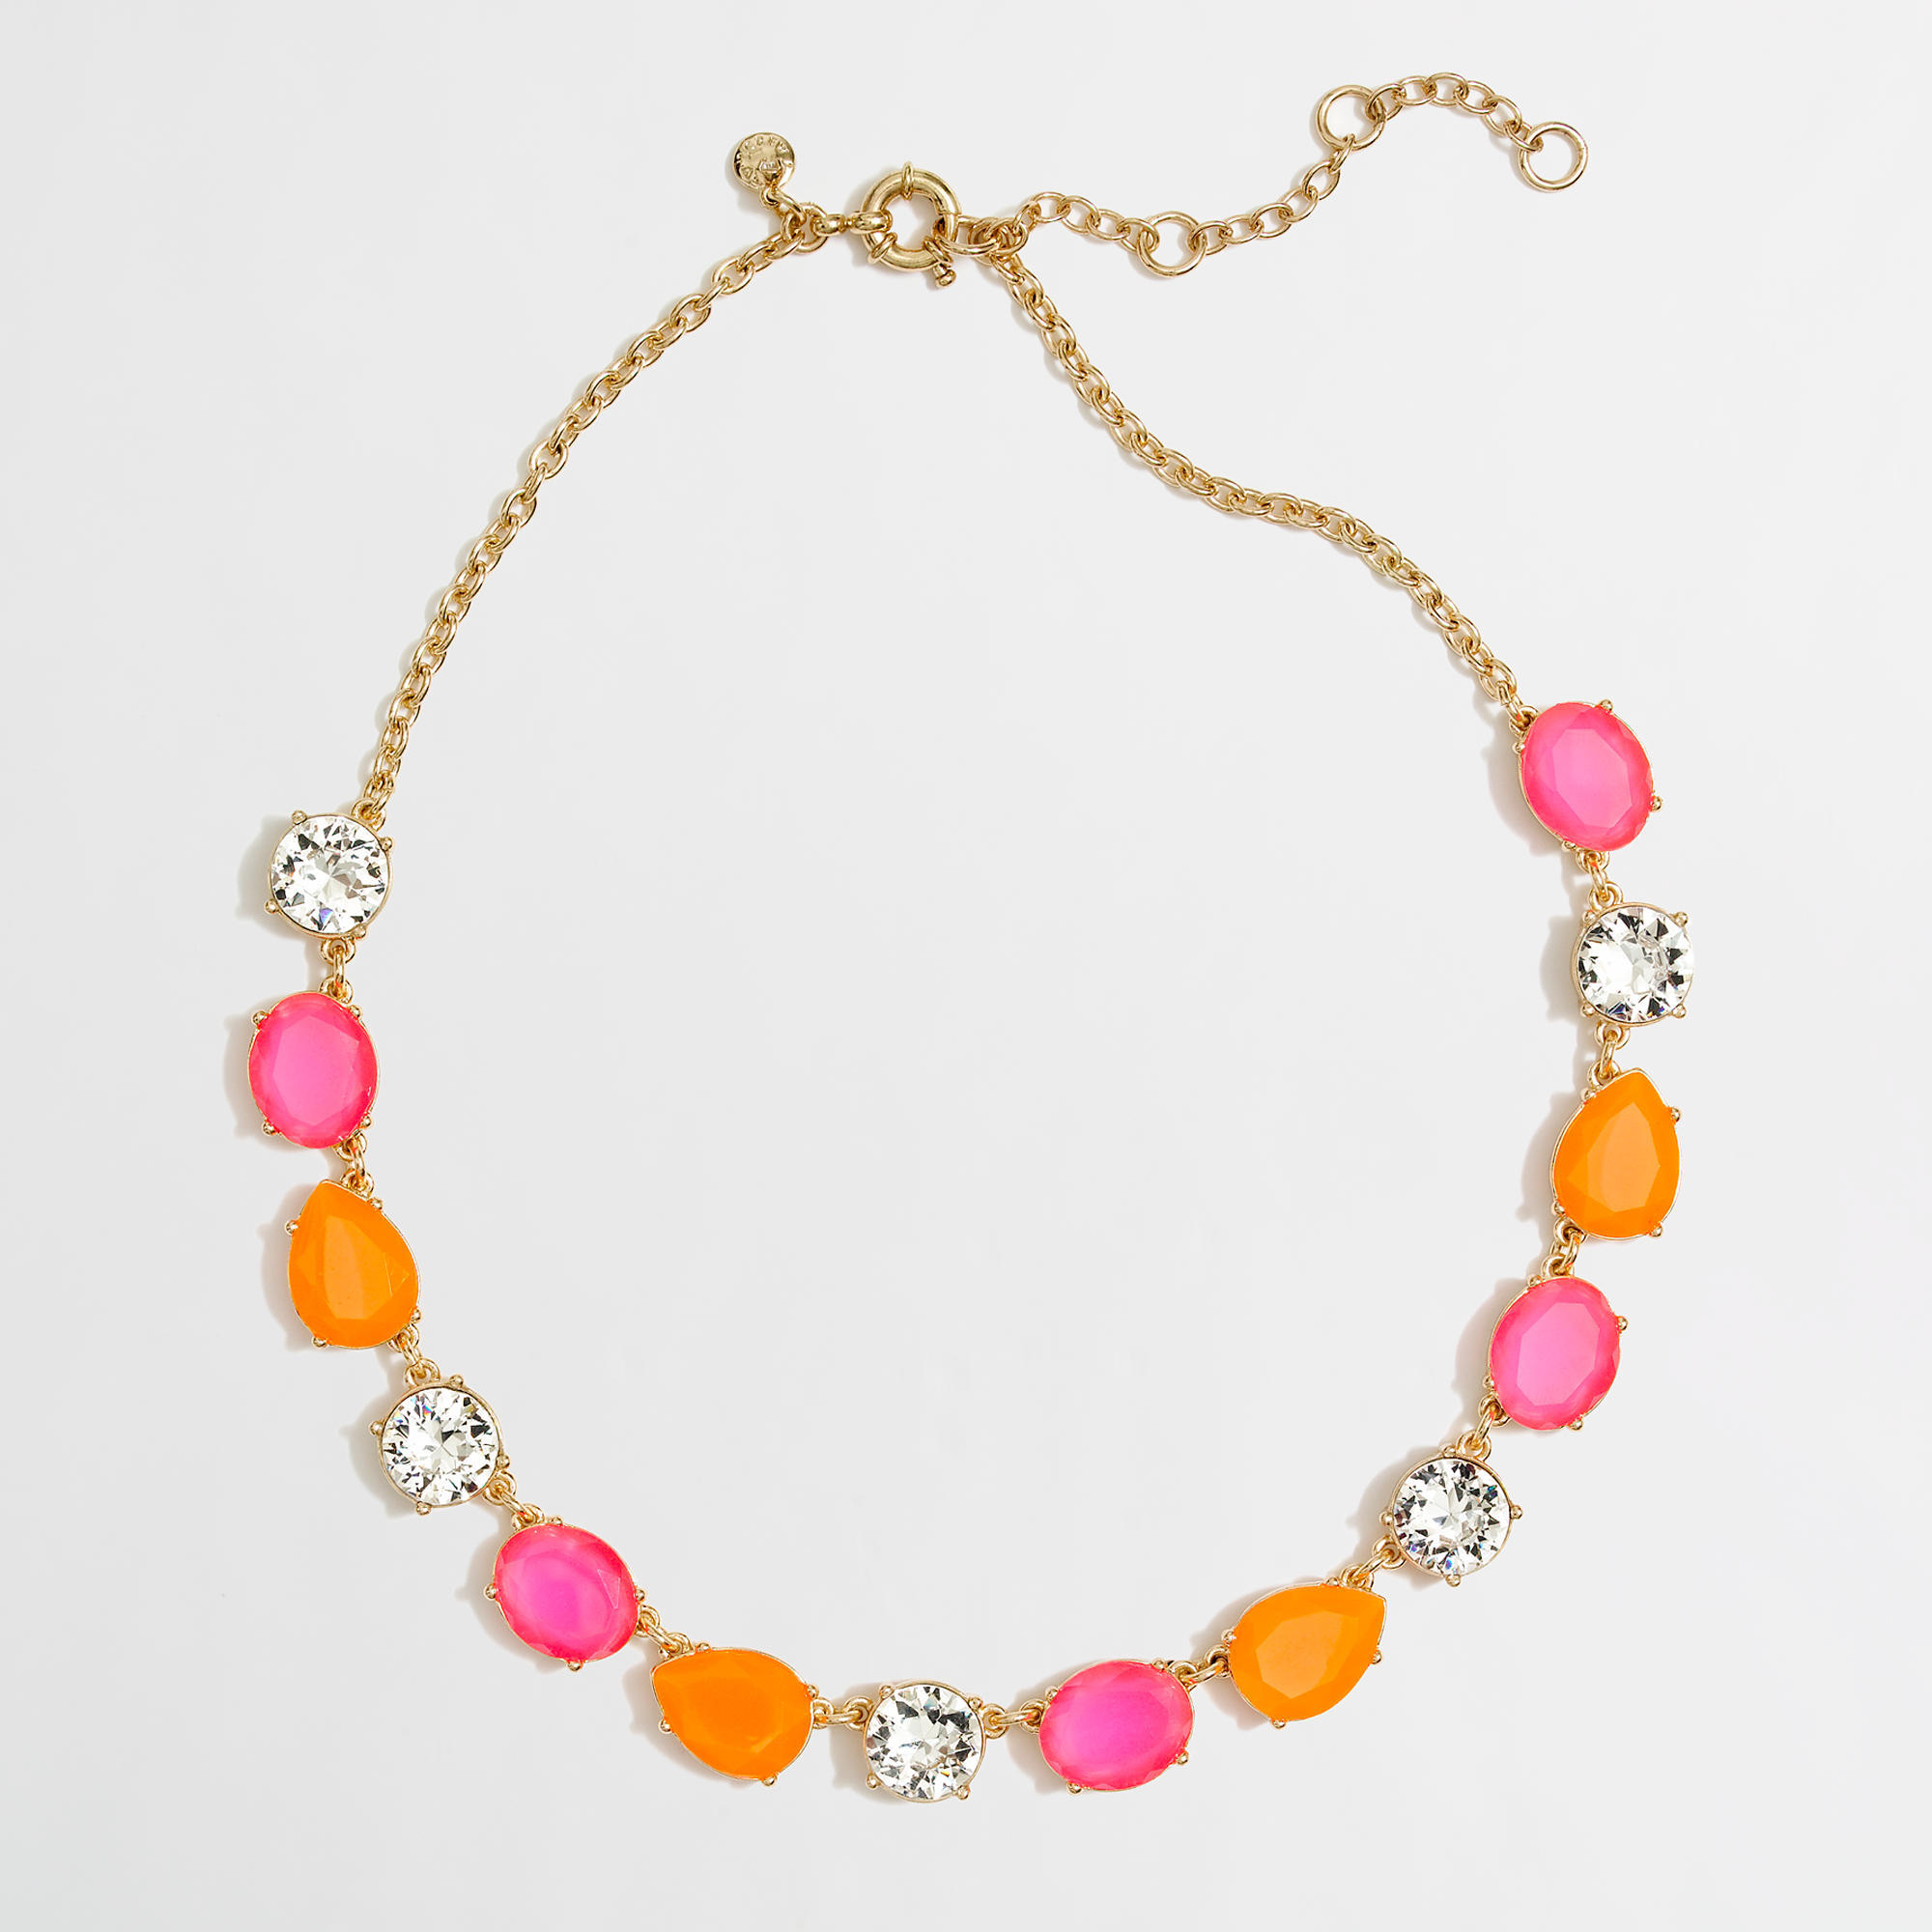 Factory Neon Stone And Crystal Necklace Factorywomen Necklaces